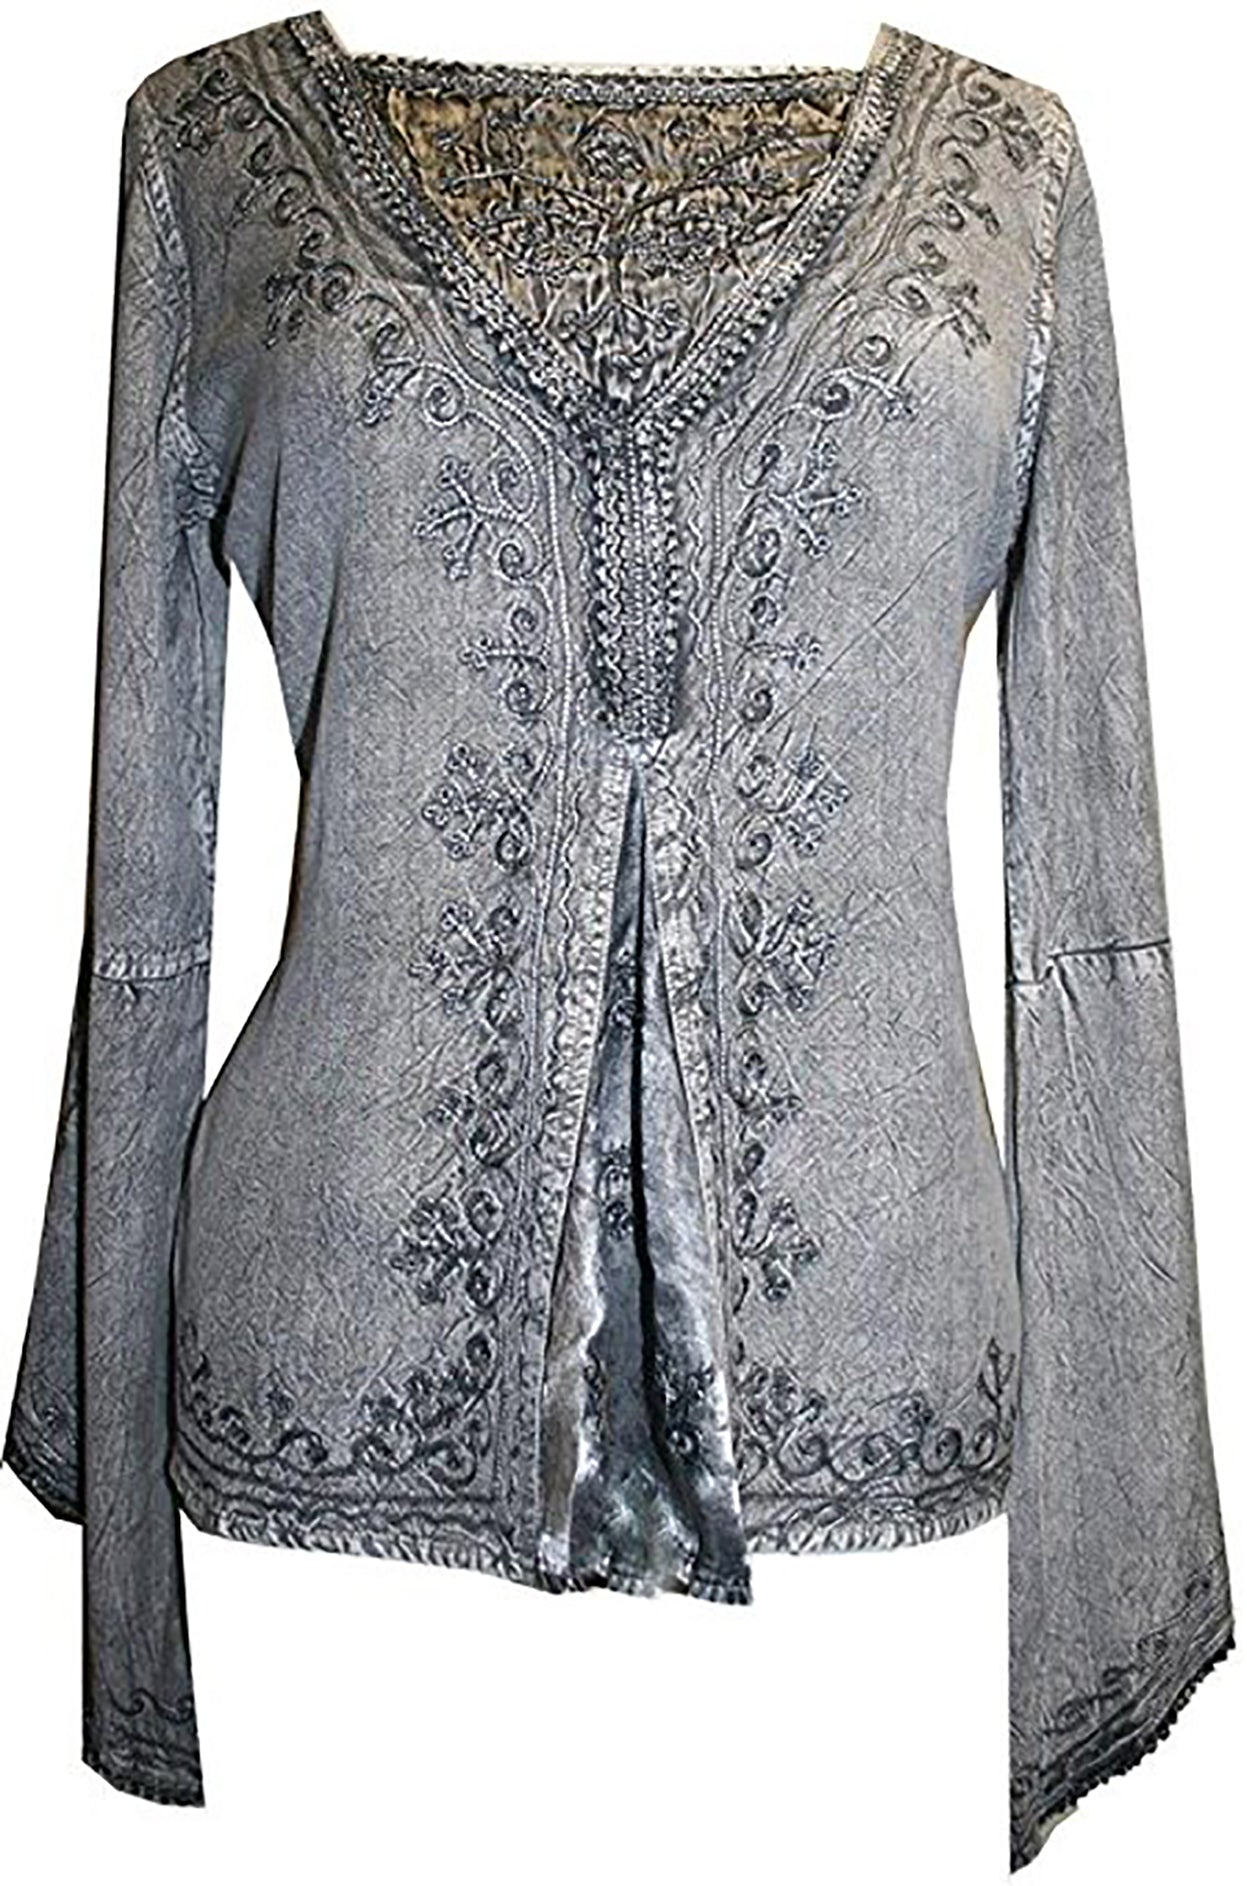 Renaissance Gypsy Bell Sleeve Blouse Top - Agan Traders, Silver / Gray